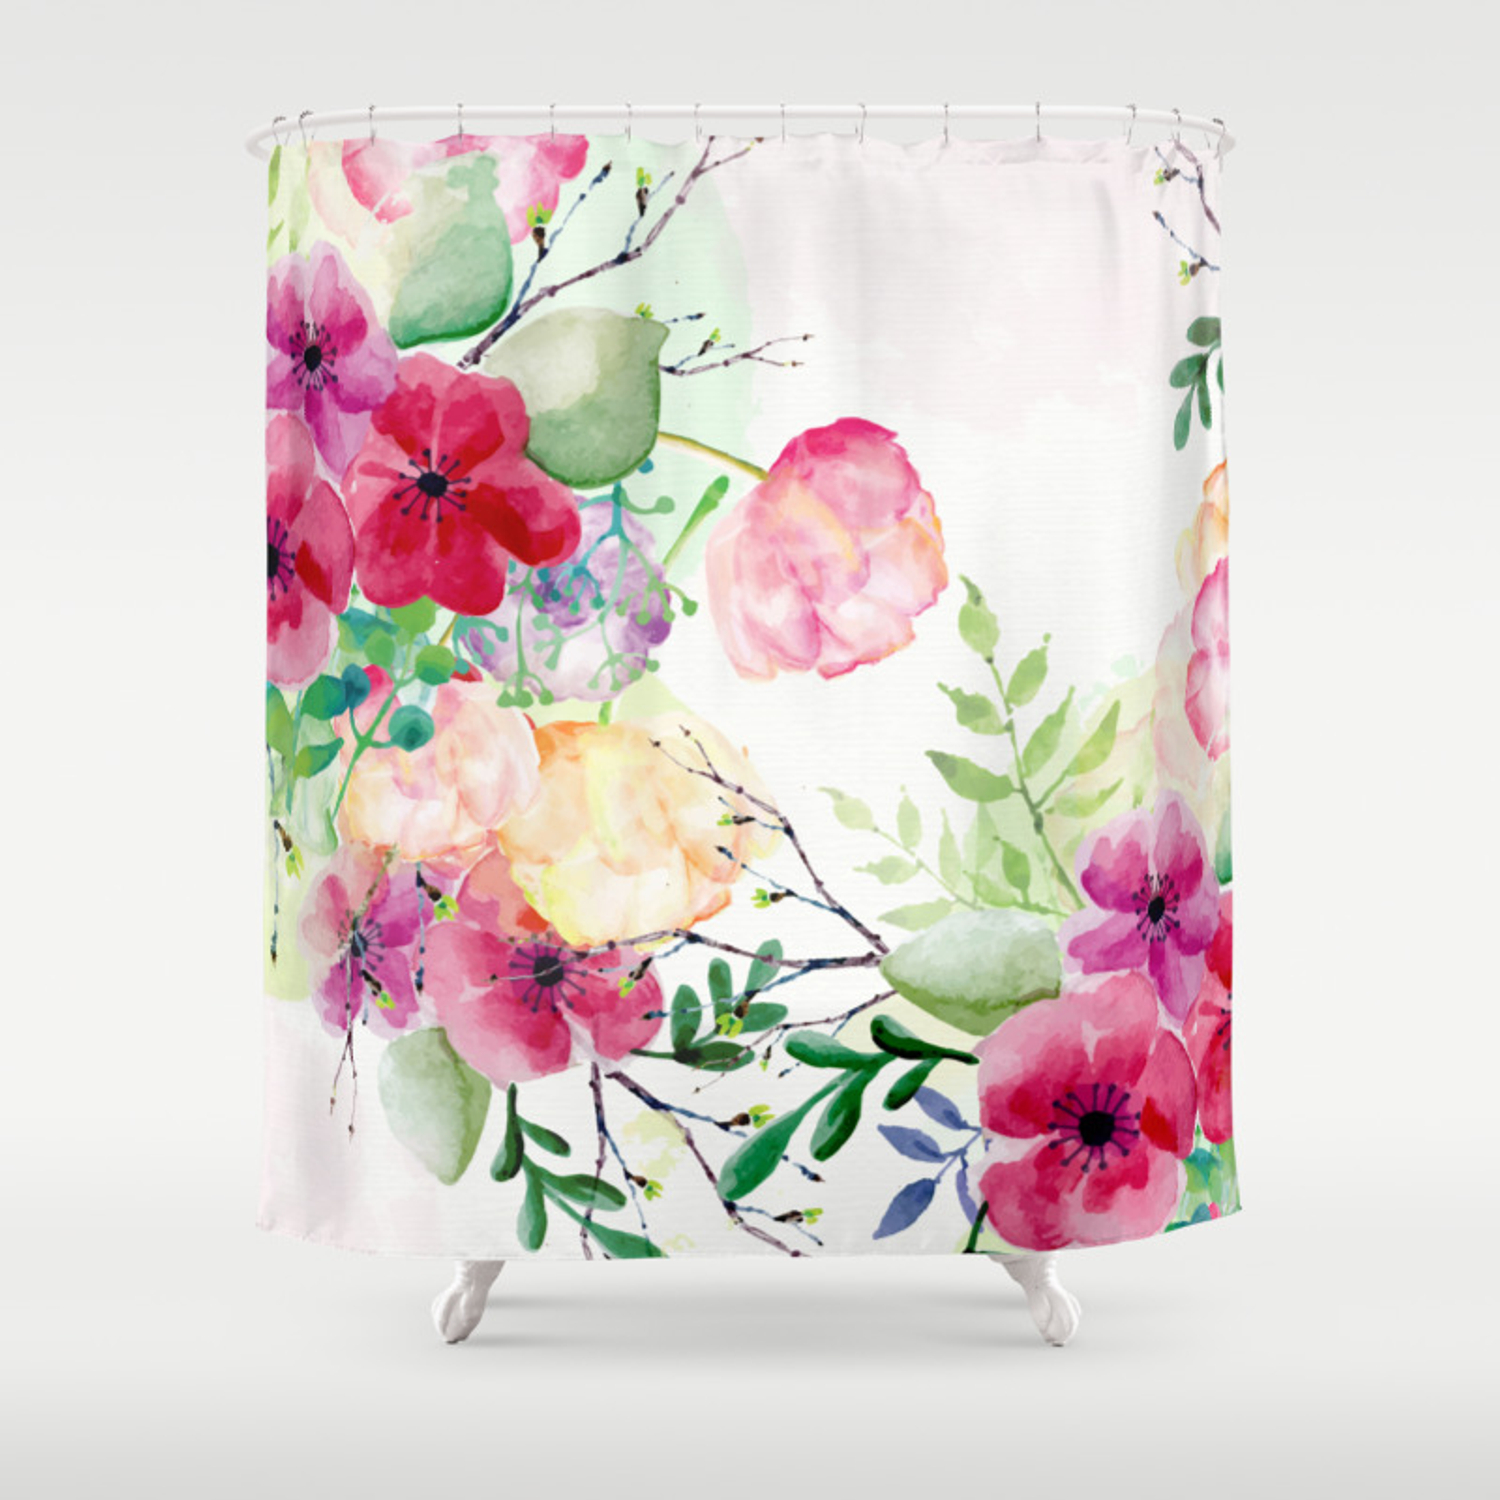 Vintage Flowers Watercolor Floral Painting Shower Curtain By